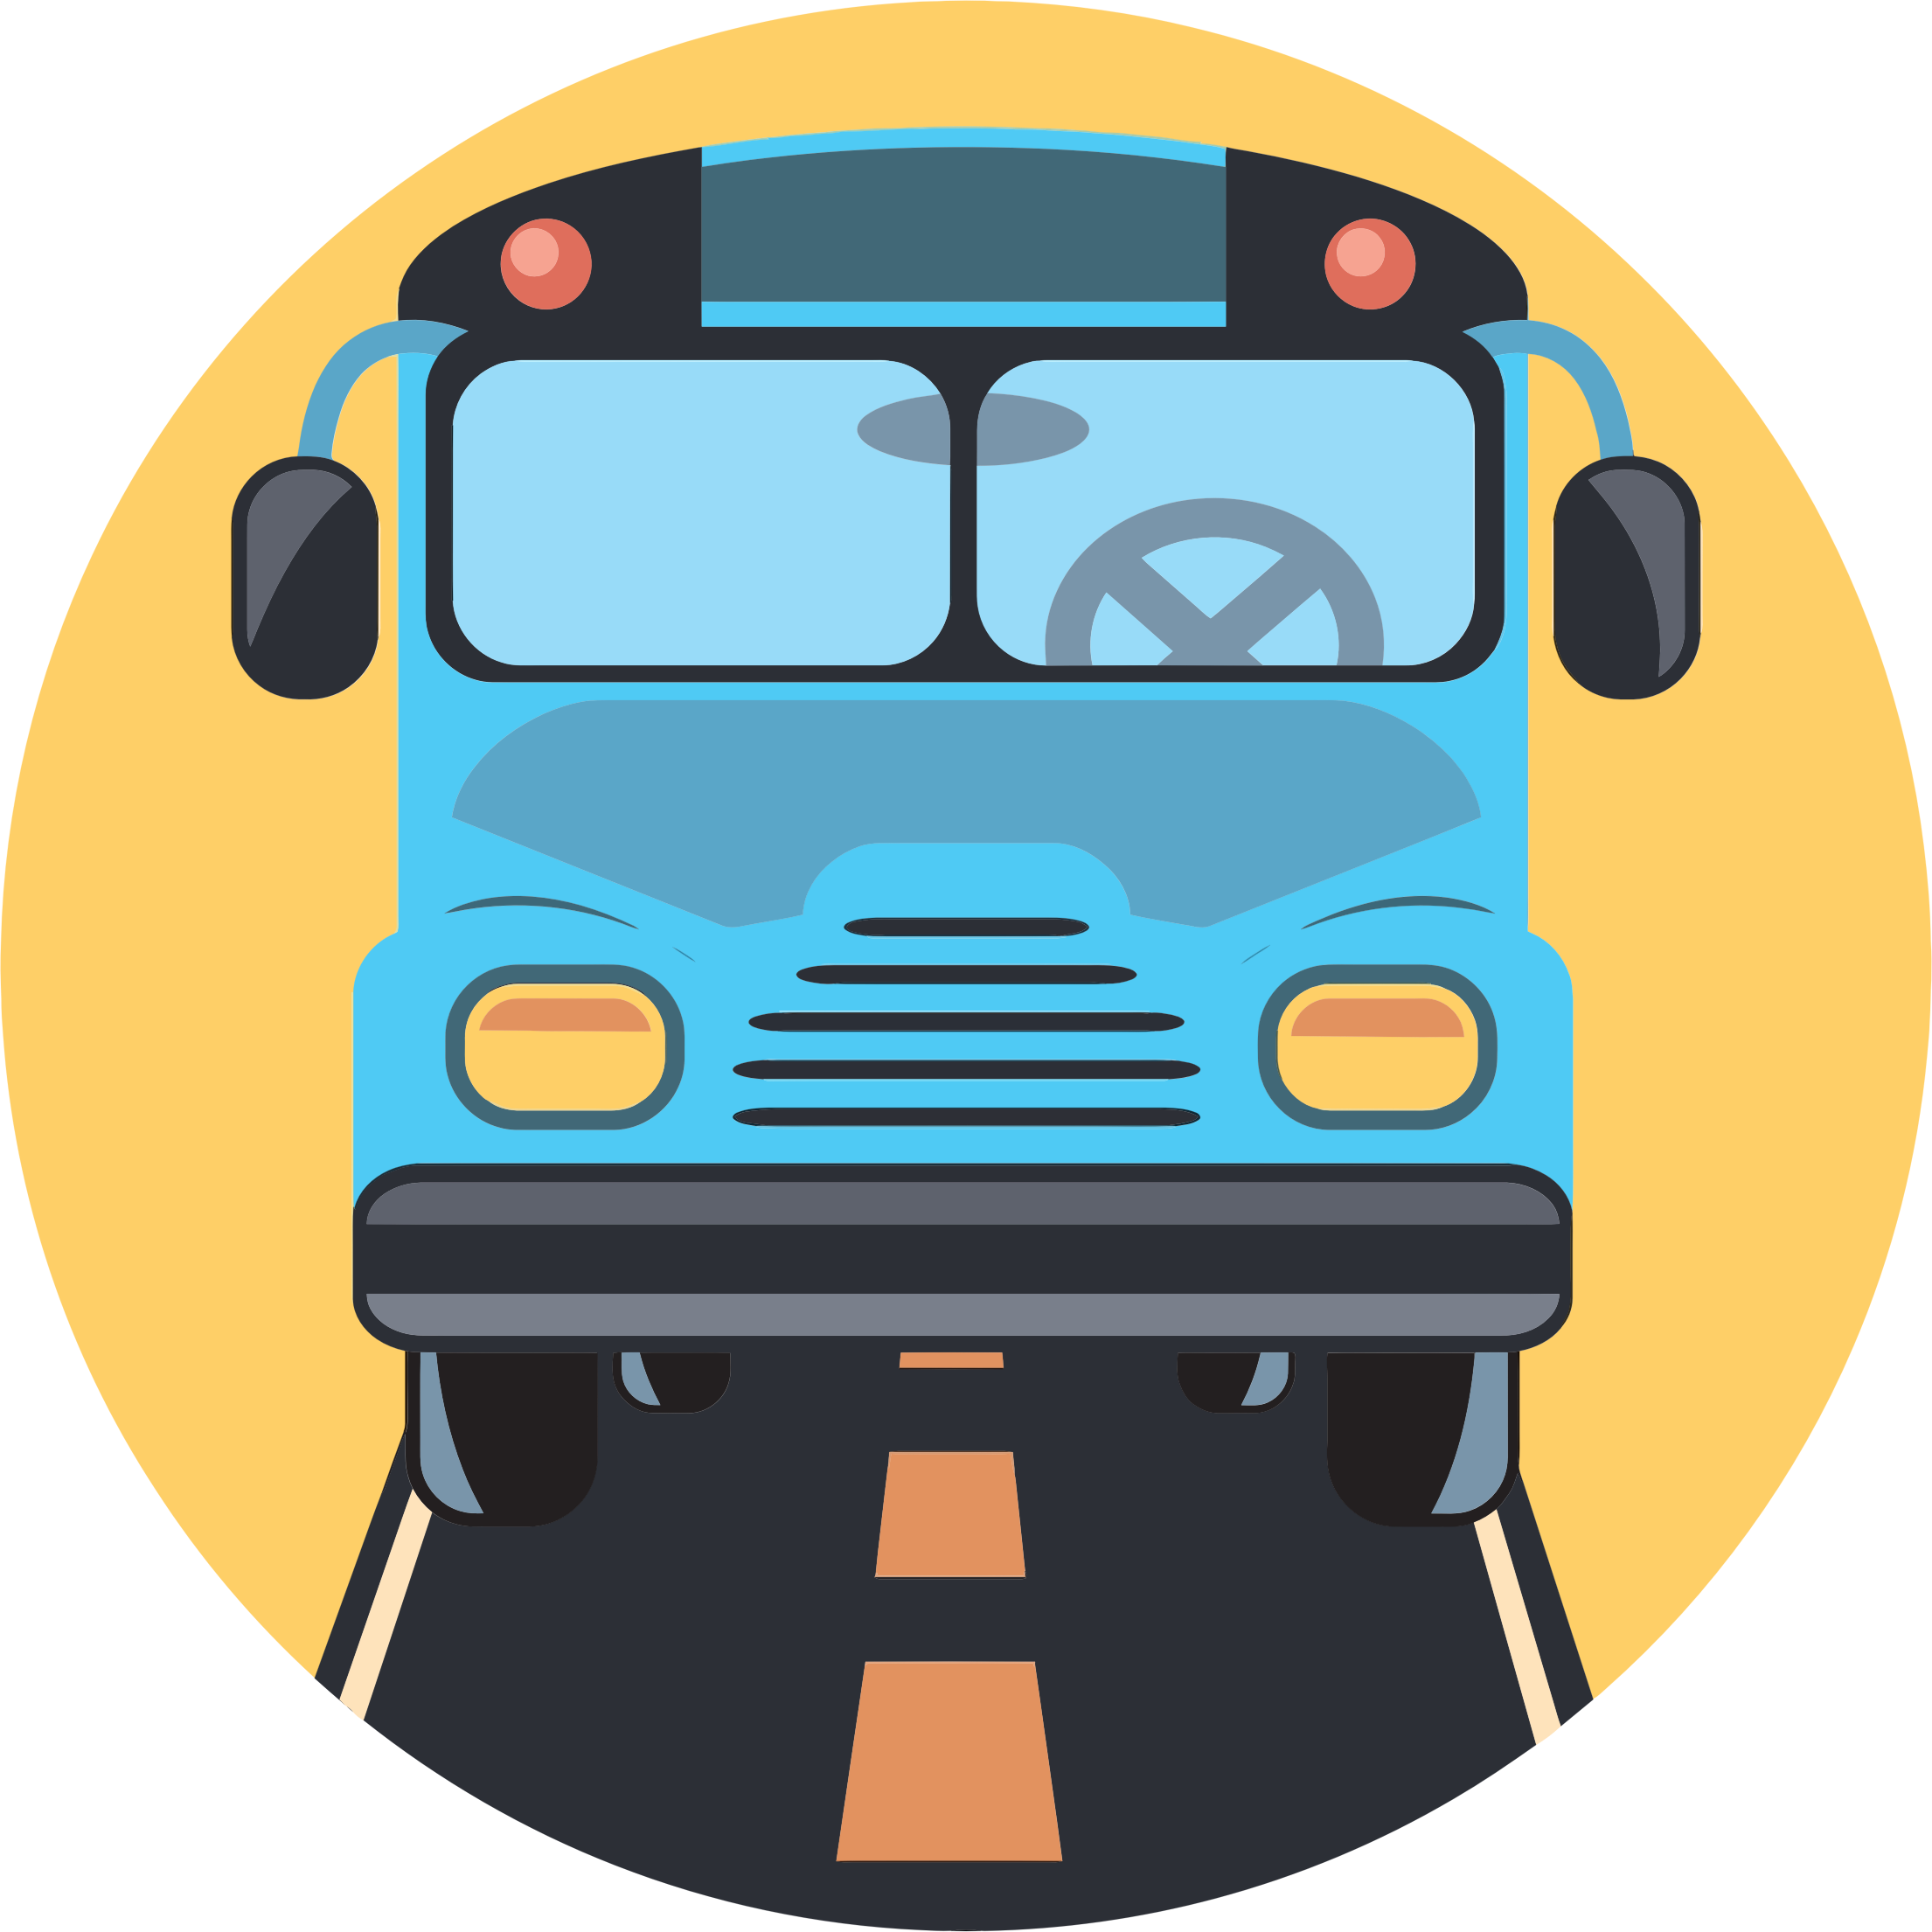 Bus clipart icon. Big image png